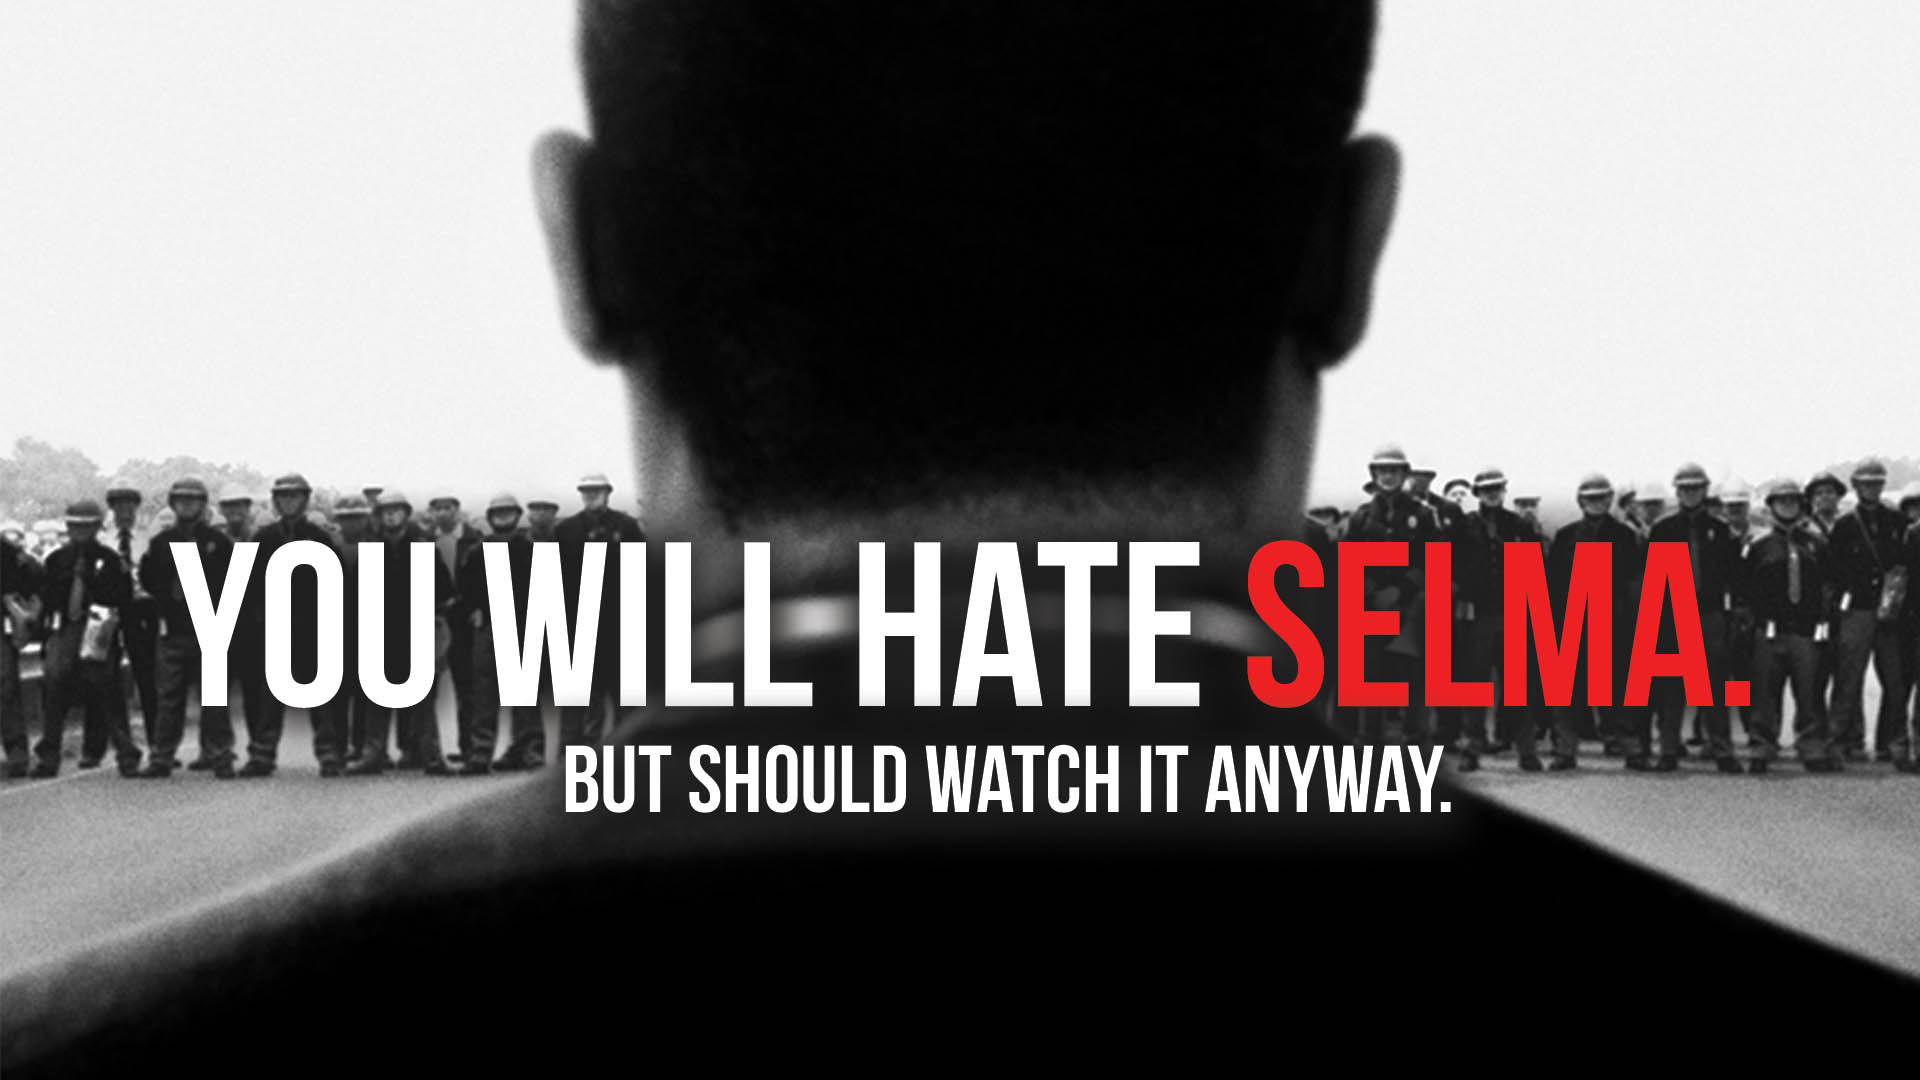 You Will Hate Selma But Should Watch It Anyway